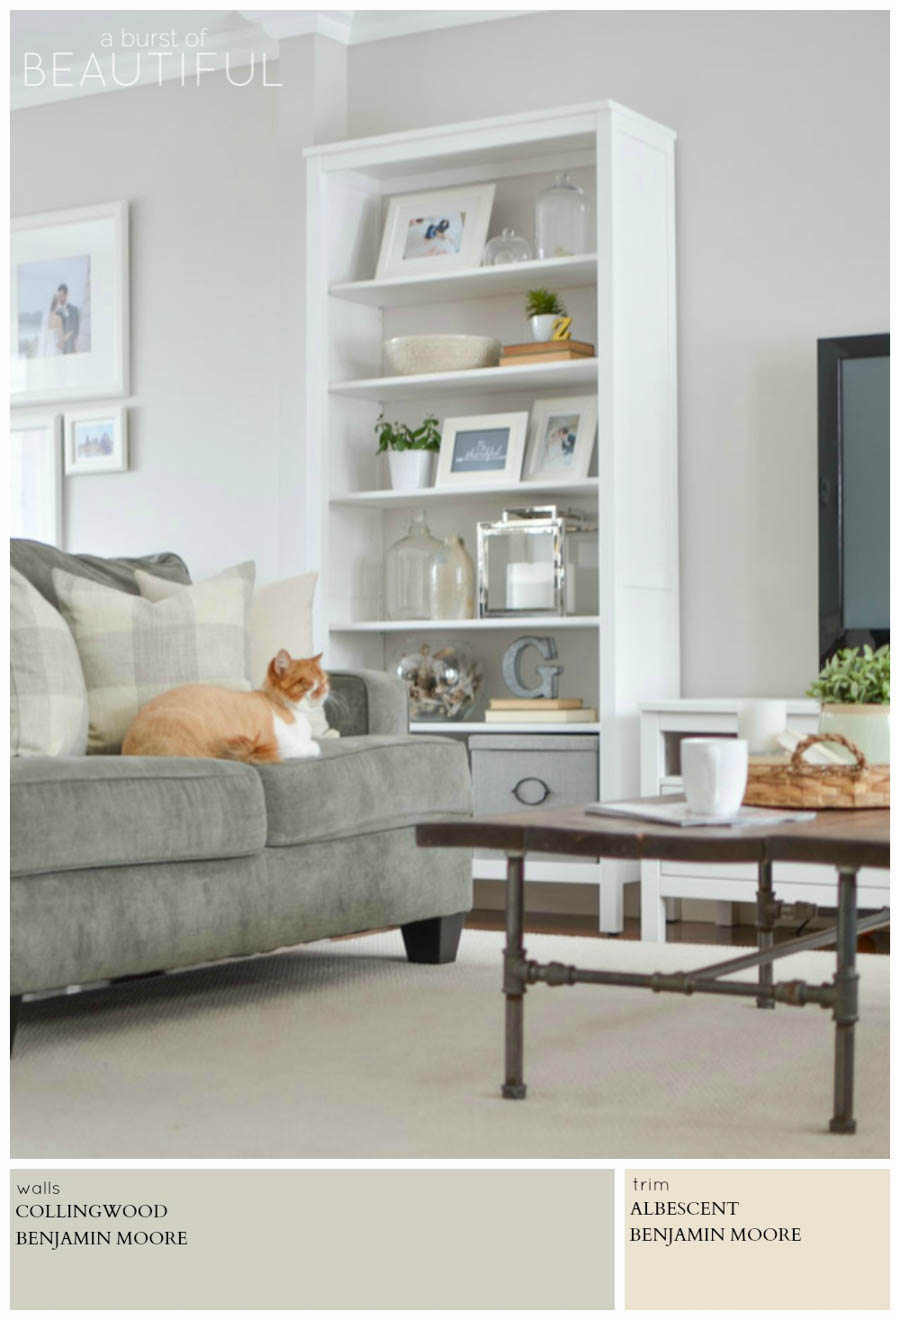 neutral colored living rooms. Collingwood by Benjamin Moore is a classic and versatile color for any  space A Burst Modern Farmhouse Neutral Paint Colors of Beautiful